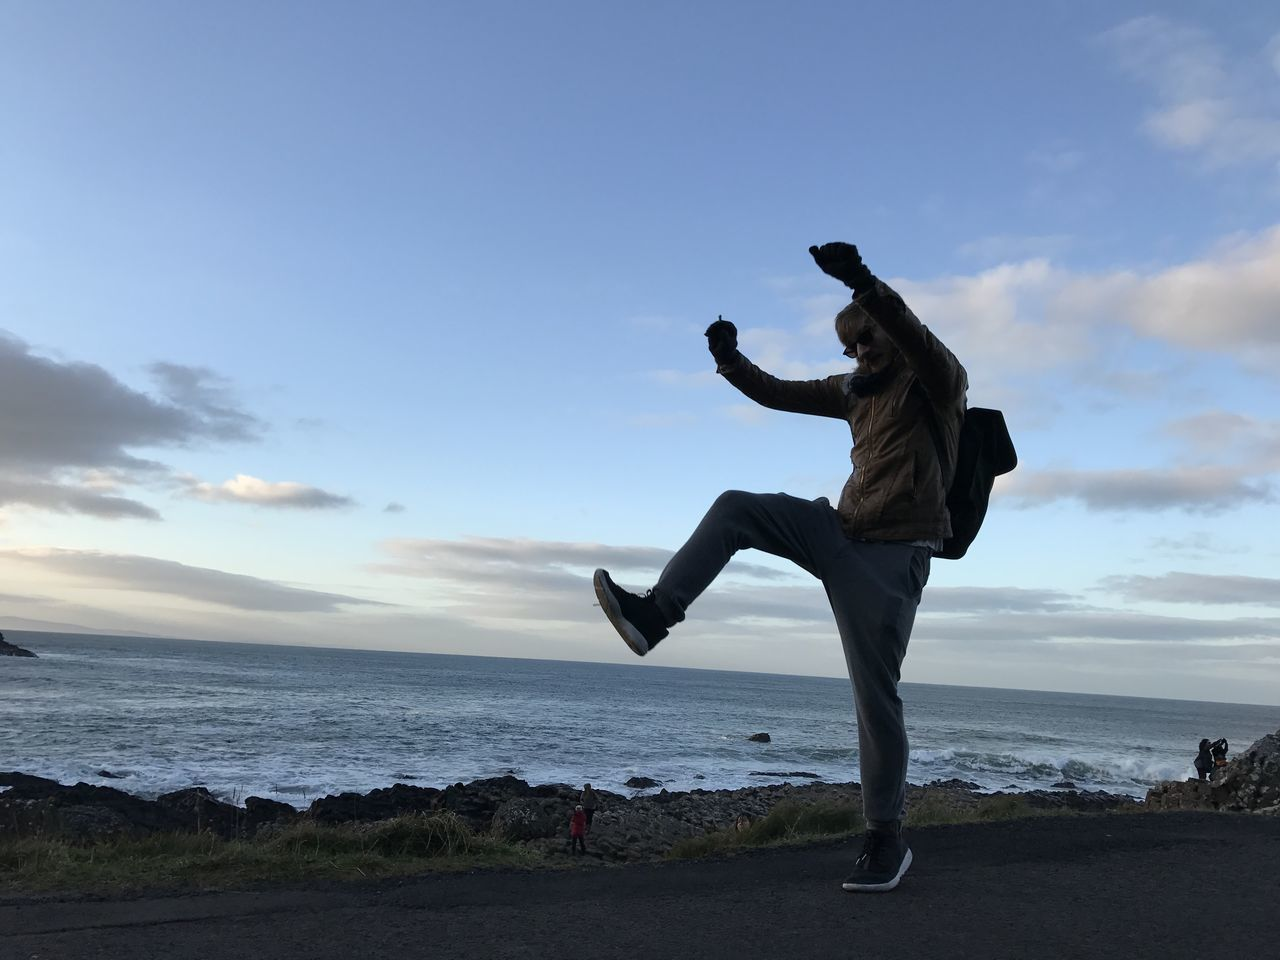 sea, full length, horizon over water, beach, sky, energetic, water, one person, men, motion, jumping, leisure activity, real people, mid-air, nature, agility, outdoors, young adult, lifestyles, day, handstand, flexibility, breakdancing, people